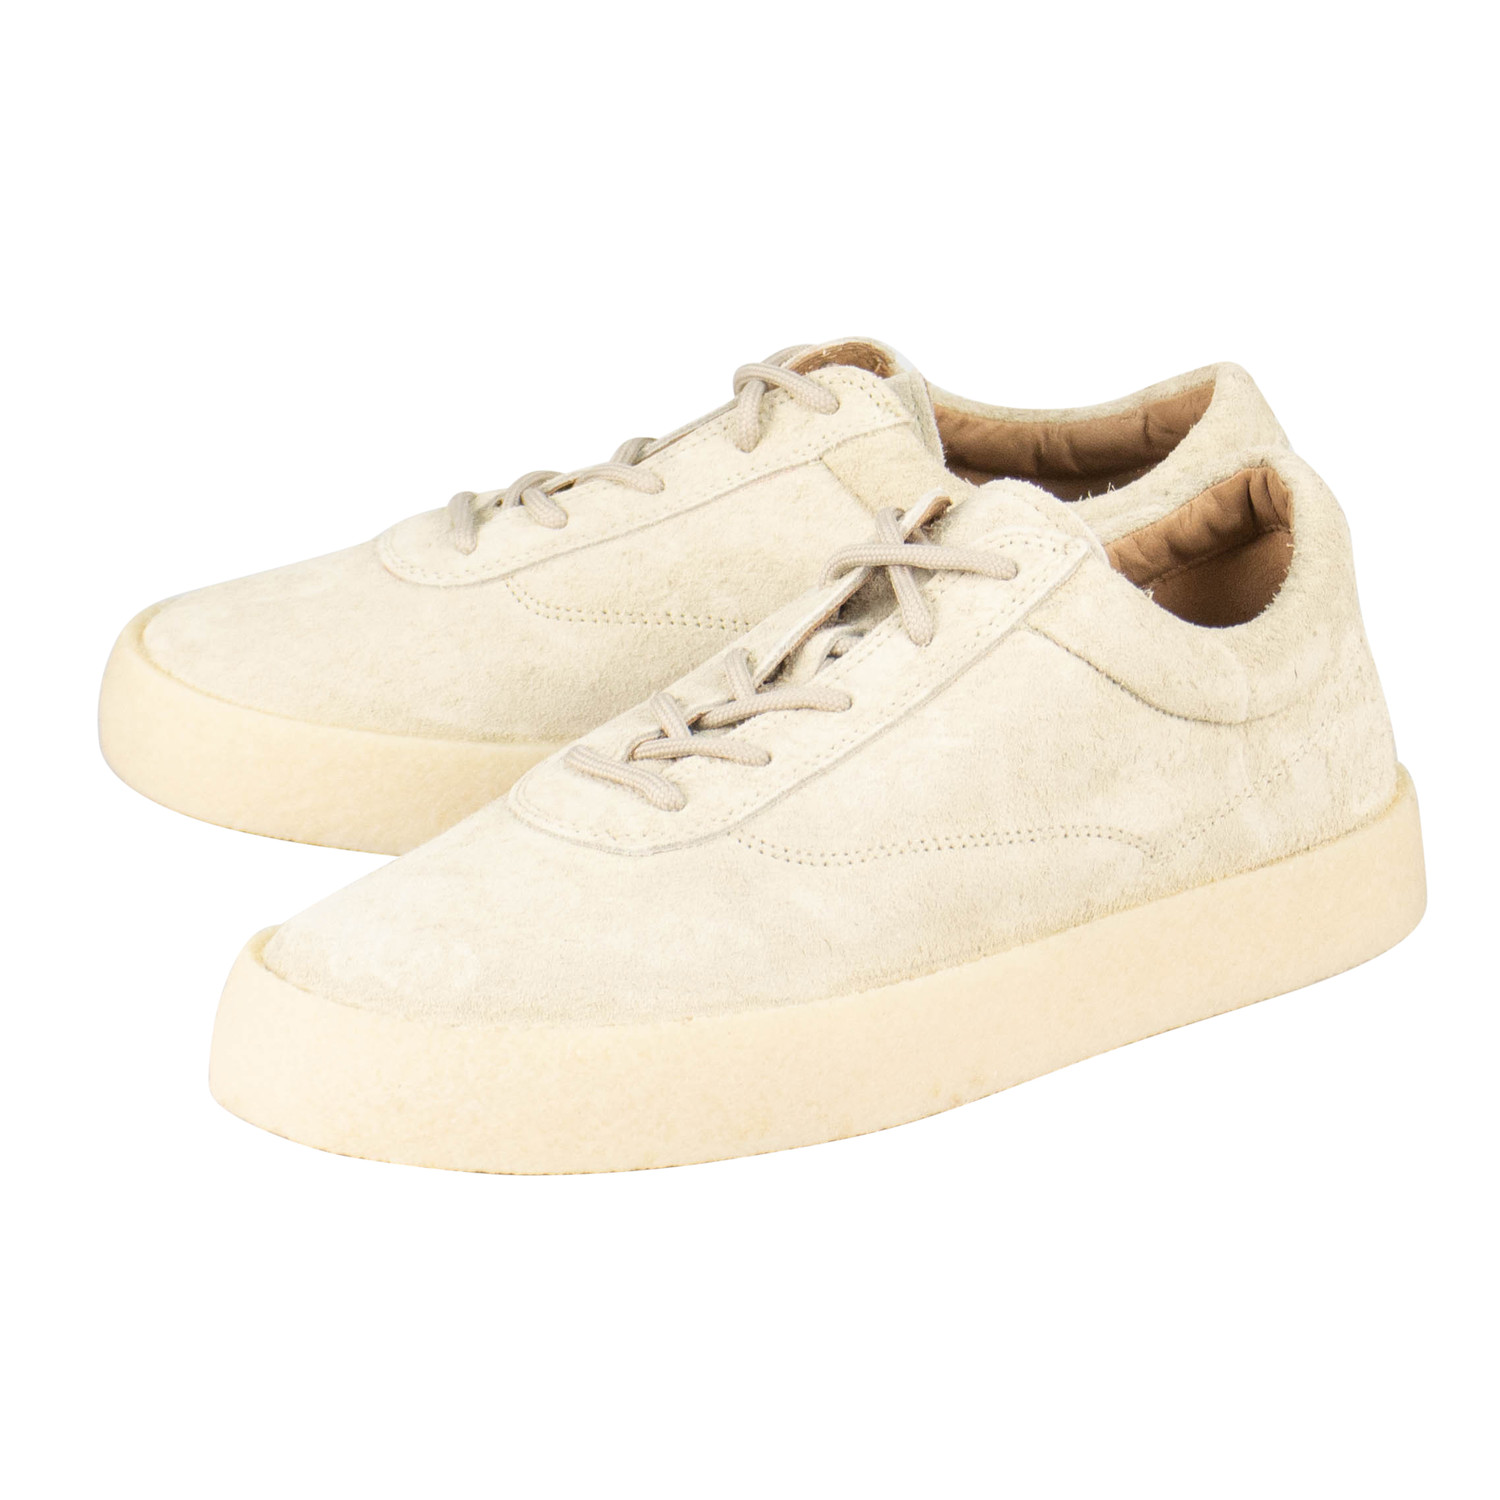 3fdaaf1b2e3 Yeezy    Season 6 Chalk Thick Shaggy Suede Crepe Sneakers    Off-White